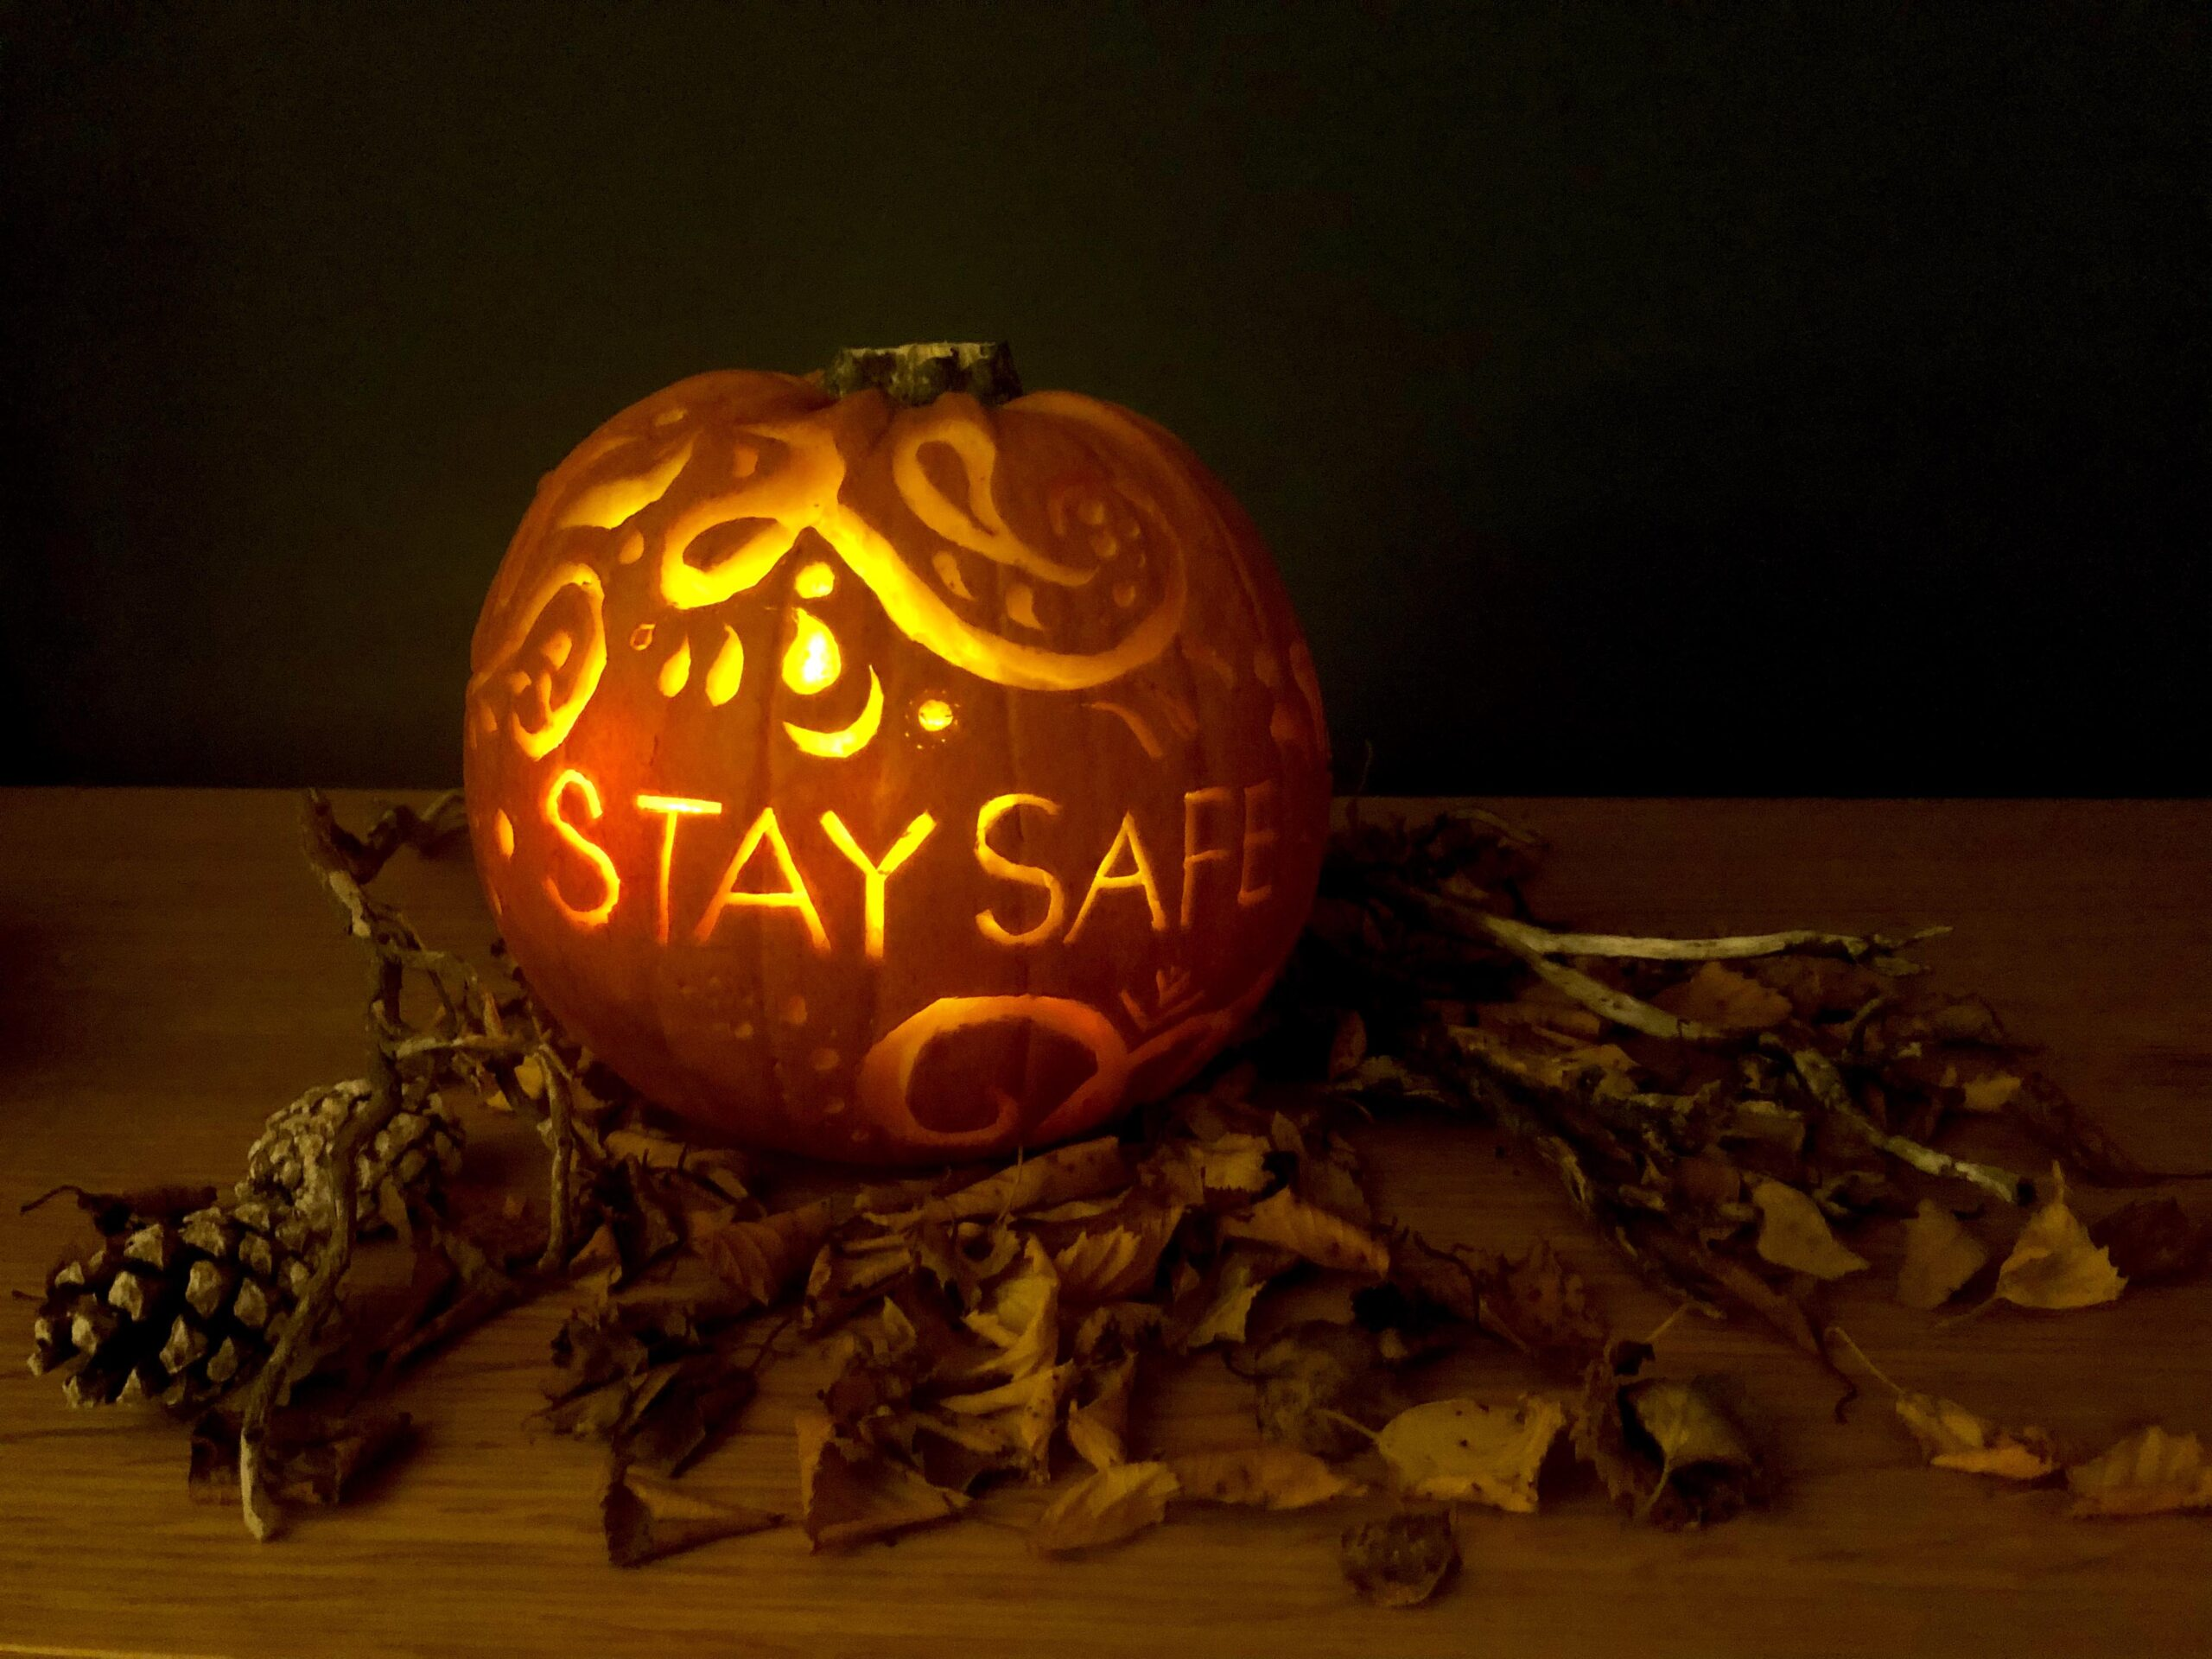 StaySafe scaled